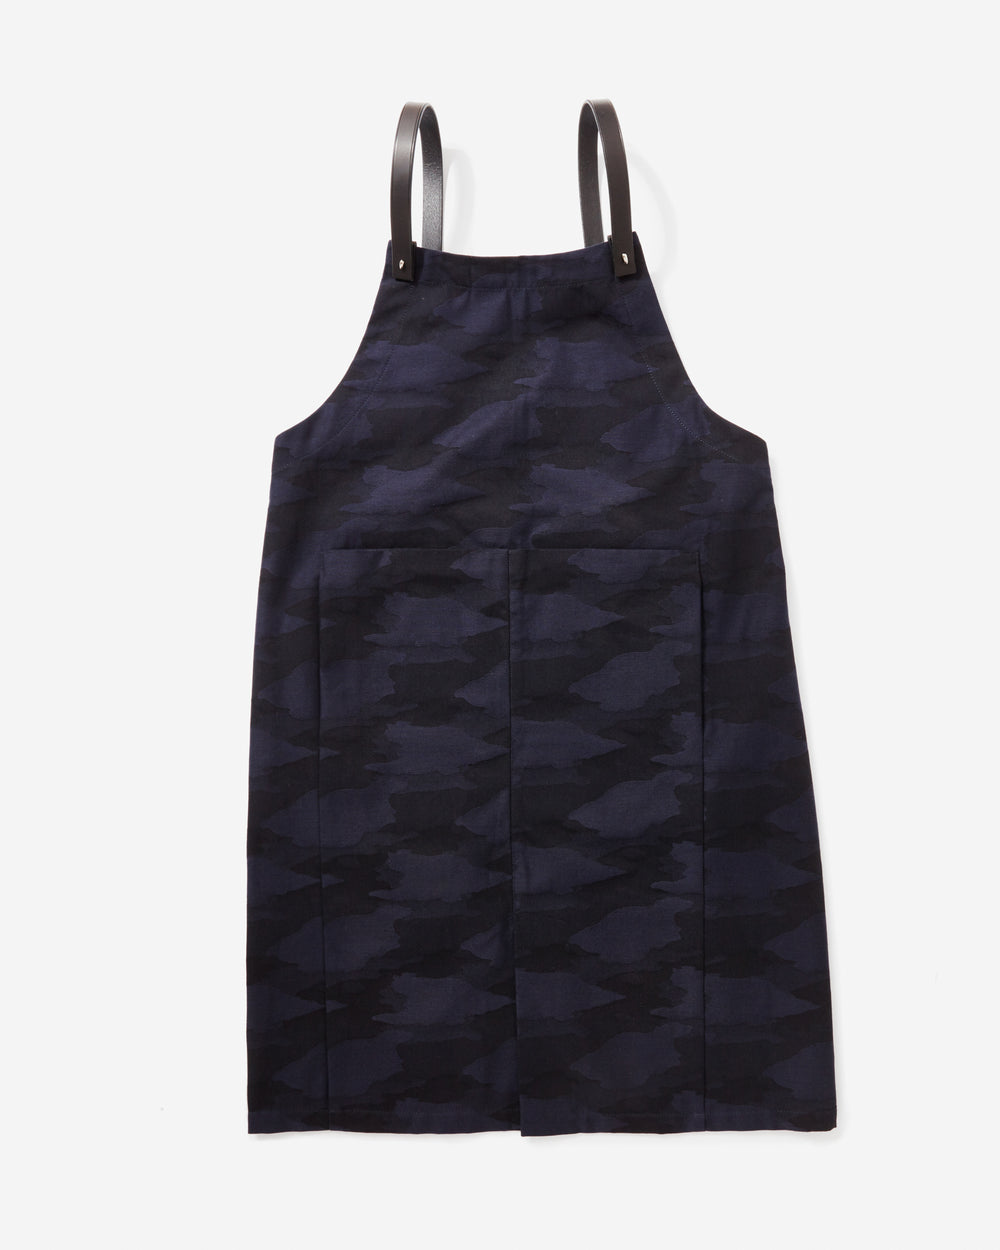 Apron in Jacquard with Black Leather Finishes